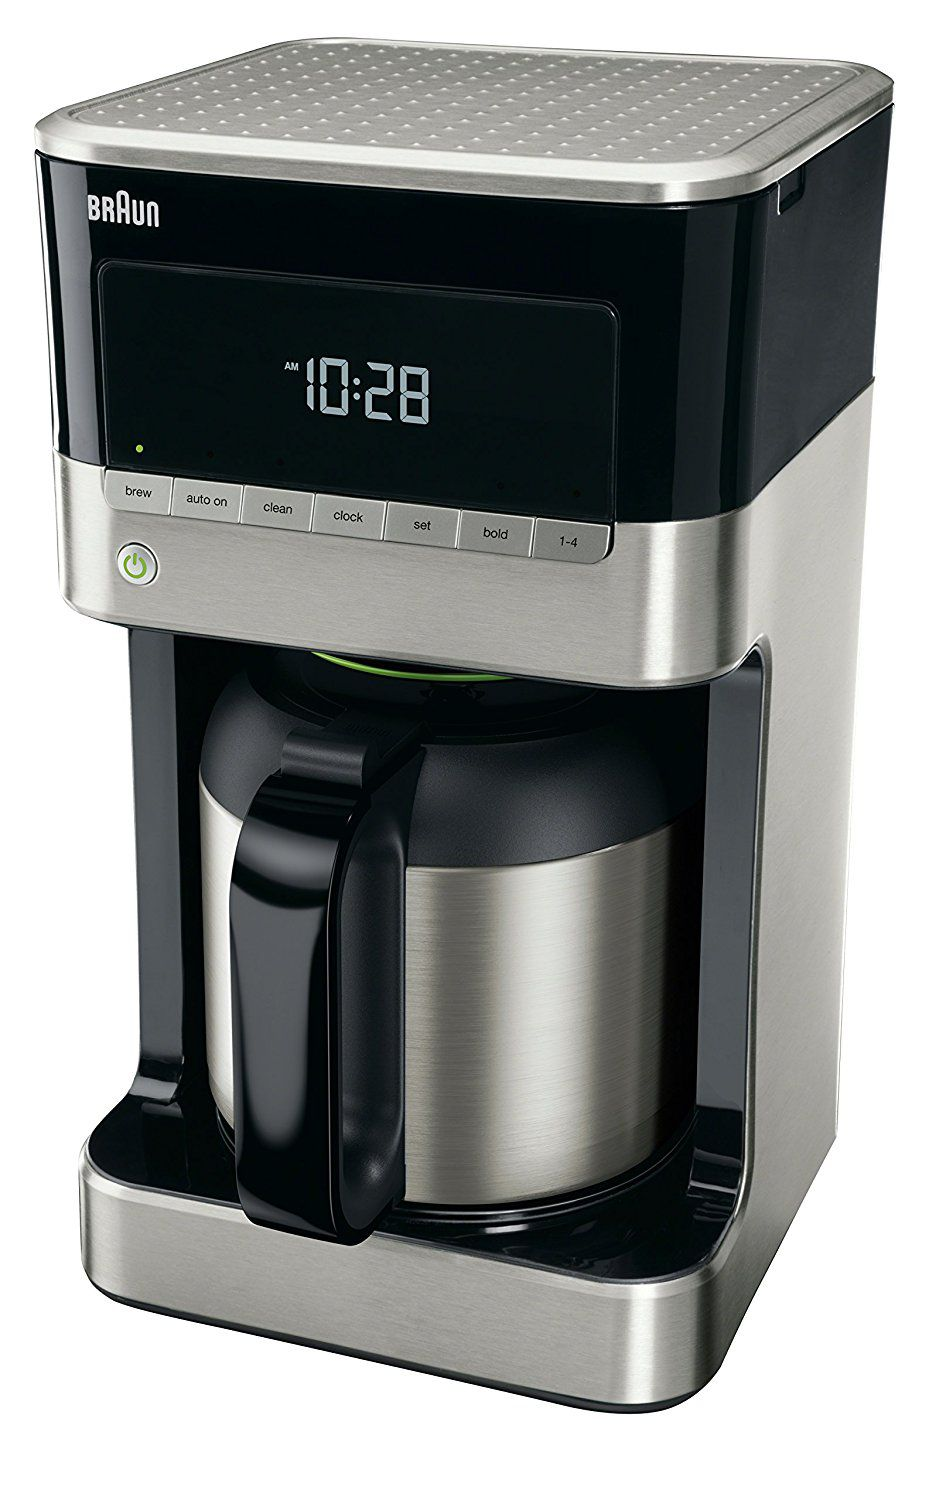 Braun KF7155BK BrewSense Thermal Drip Coffee Maker4 Best Drip Coffee Maker With Thermal Carafe